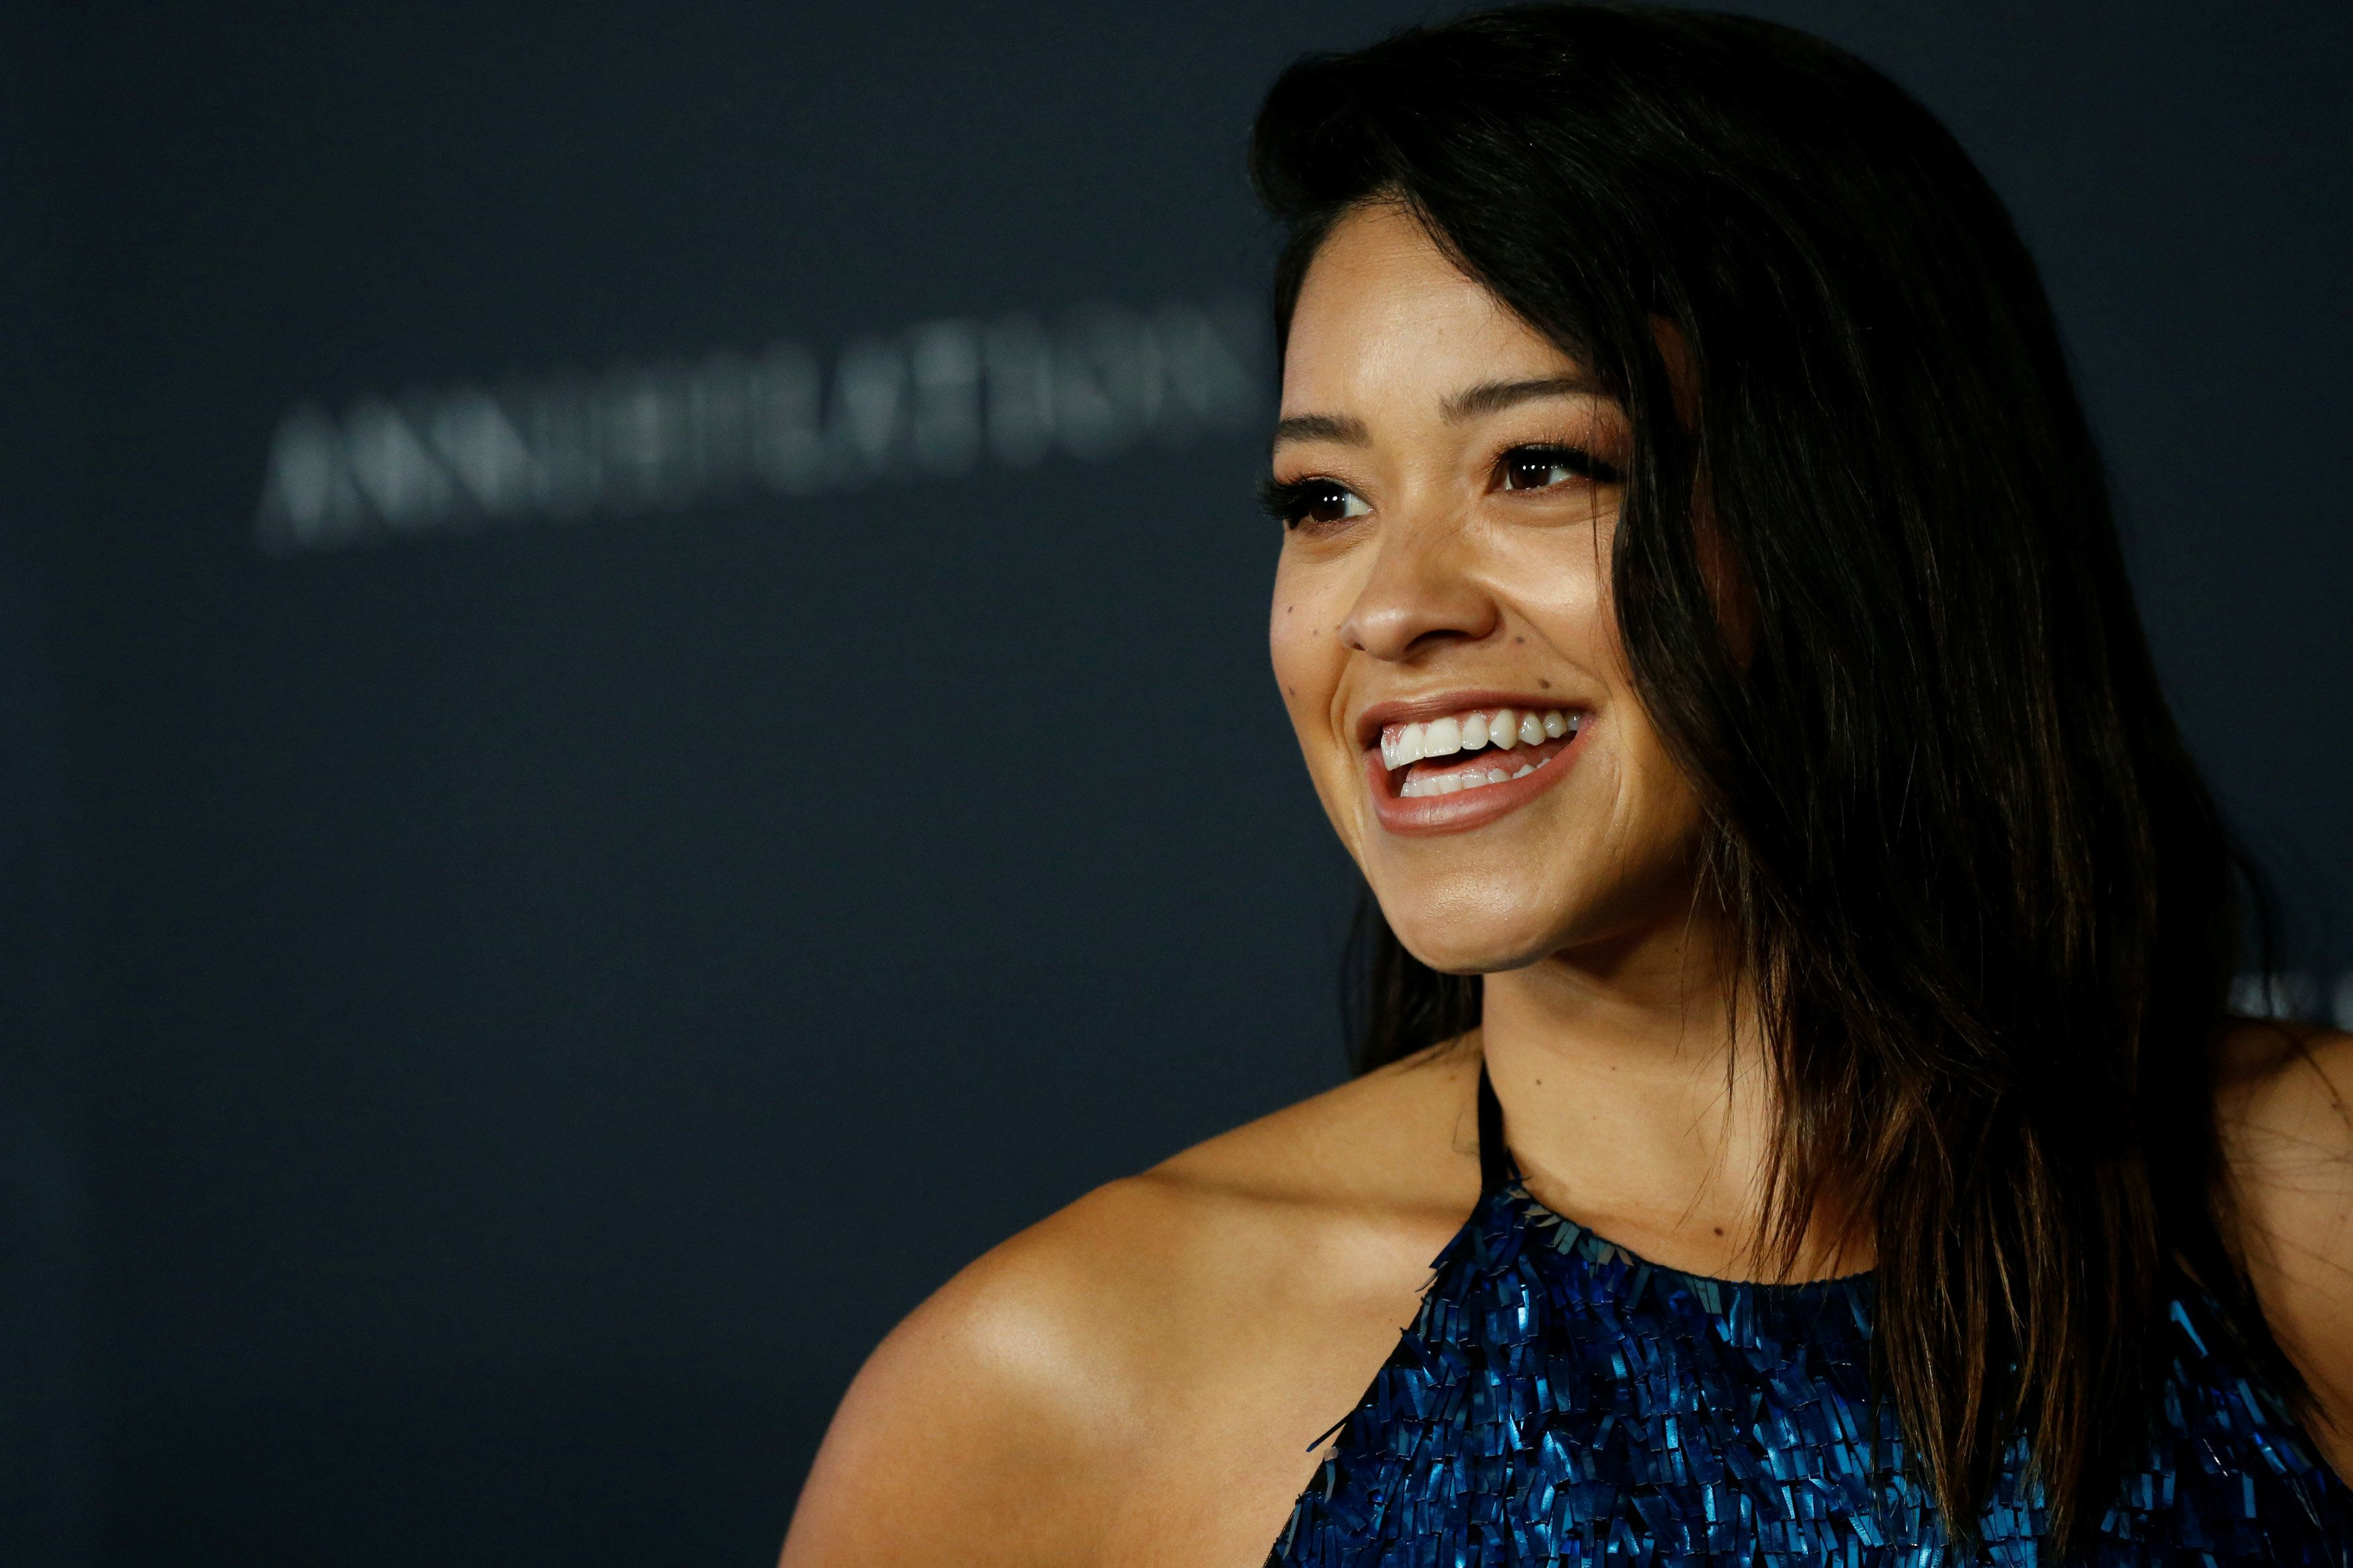 """Cast member Gina Rodriguez poses at the premiere for """"Annihilation"""" in Los Angeles, California, U.S., February 13, 2018. REUTERS/Mario Anzuoni"""